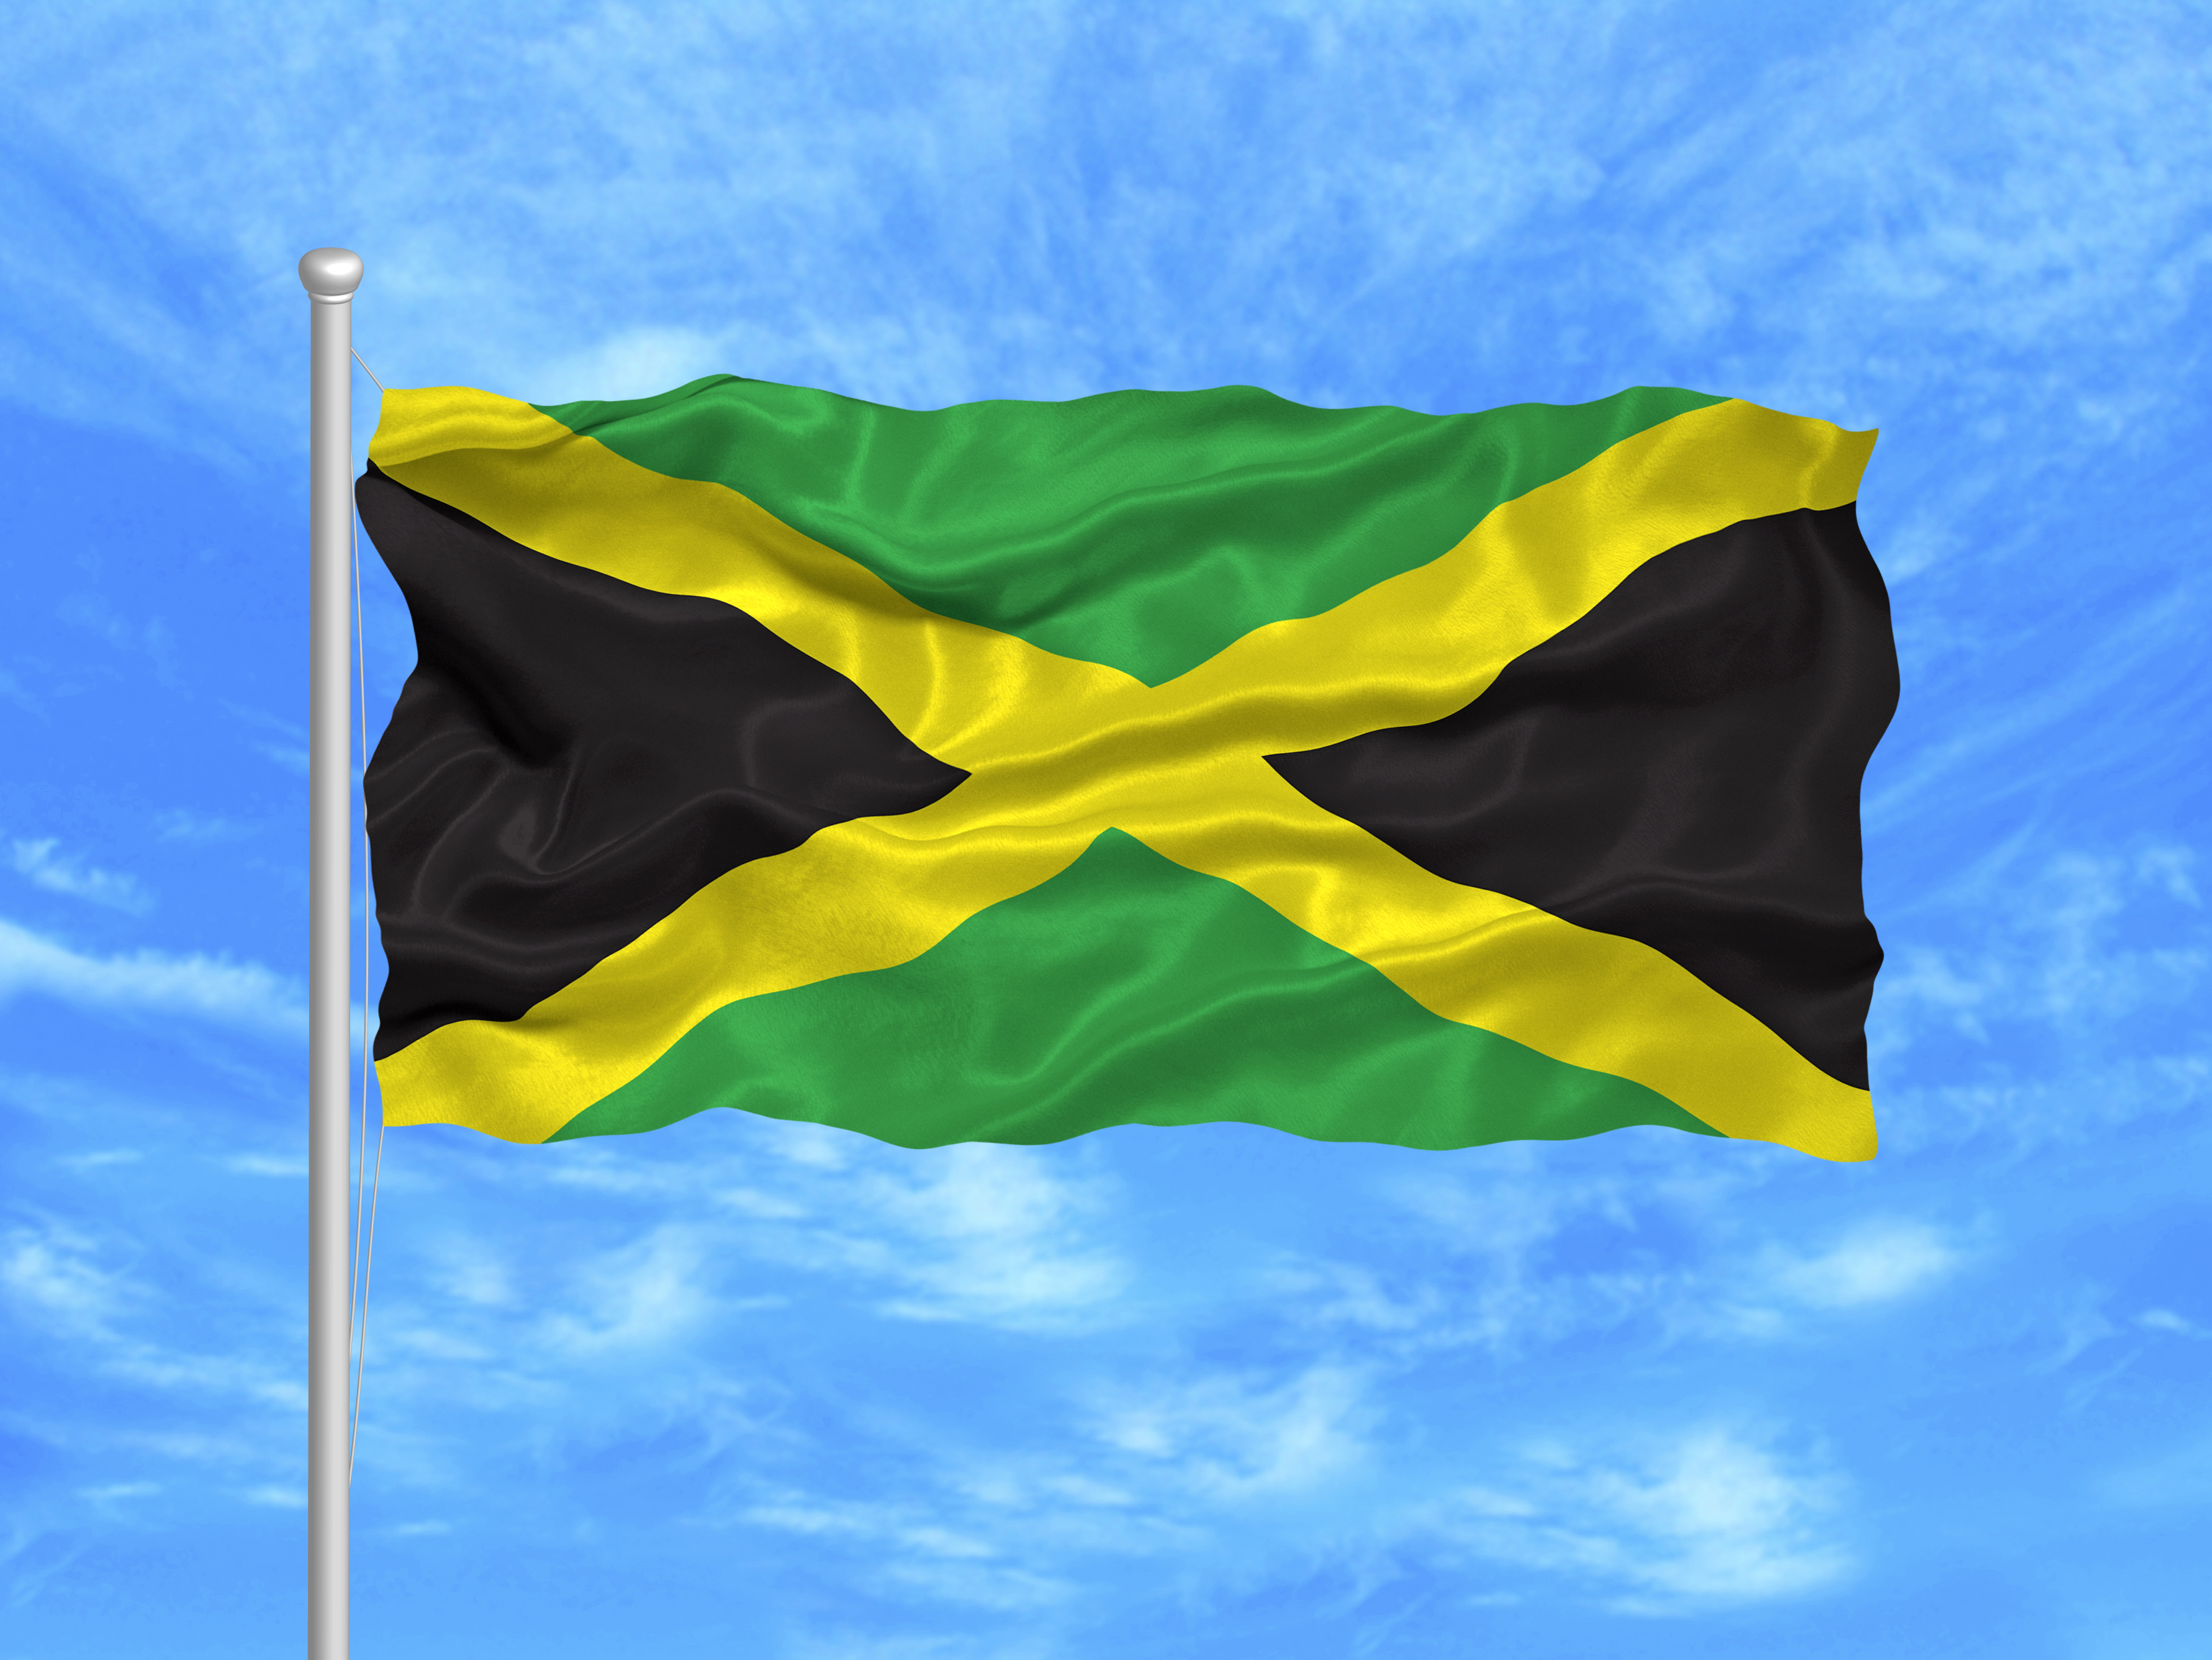 jamaica senior singles Tips for caribbean travelers planning a vacation, holiday, or trip to an all-inclusive resort, including information for singles, couples, families, seniors, and groups.